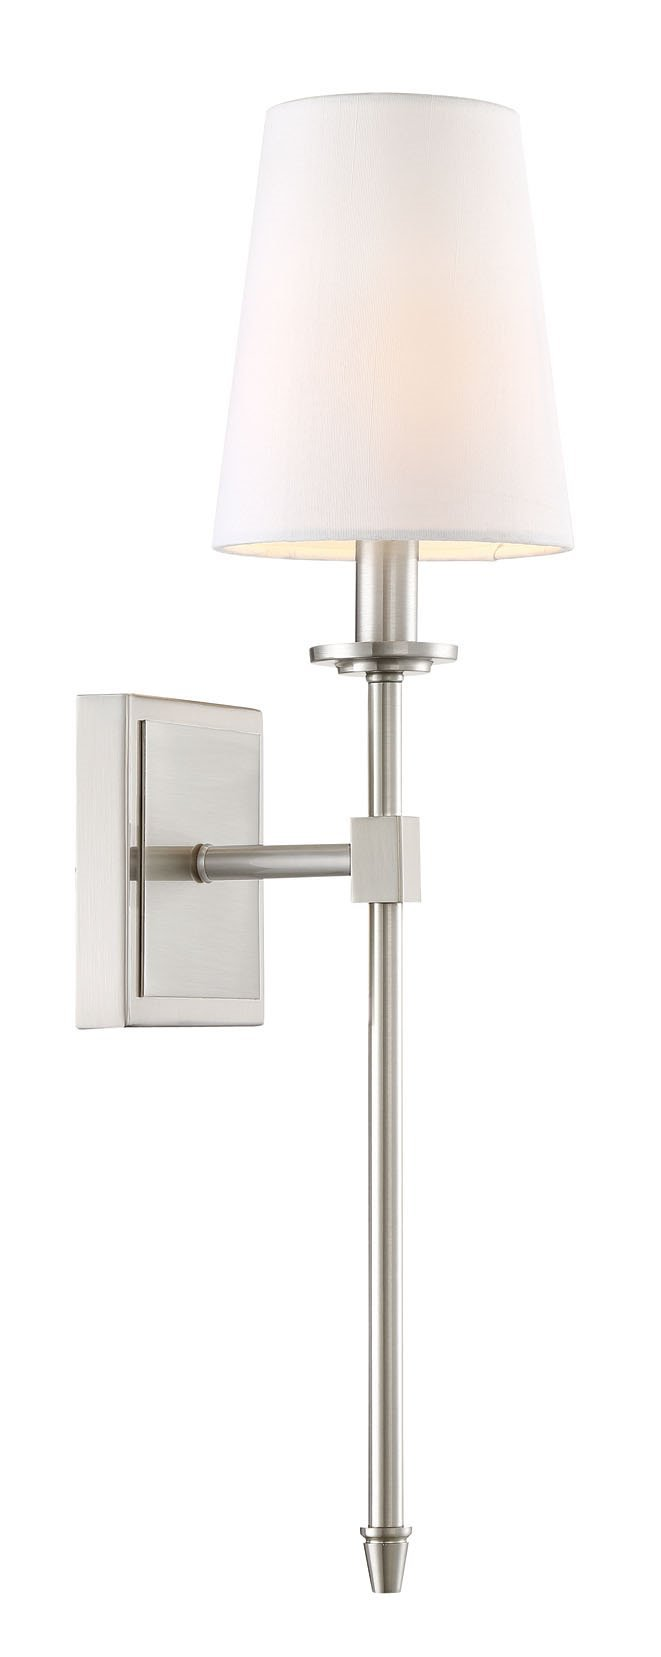 Kira Home Torche 20'' Wall Sconce/Wall Light + Linen Shade, Brushed Nickel Finish